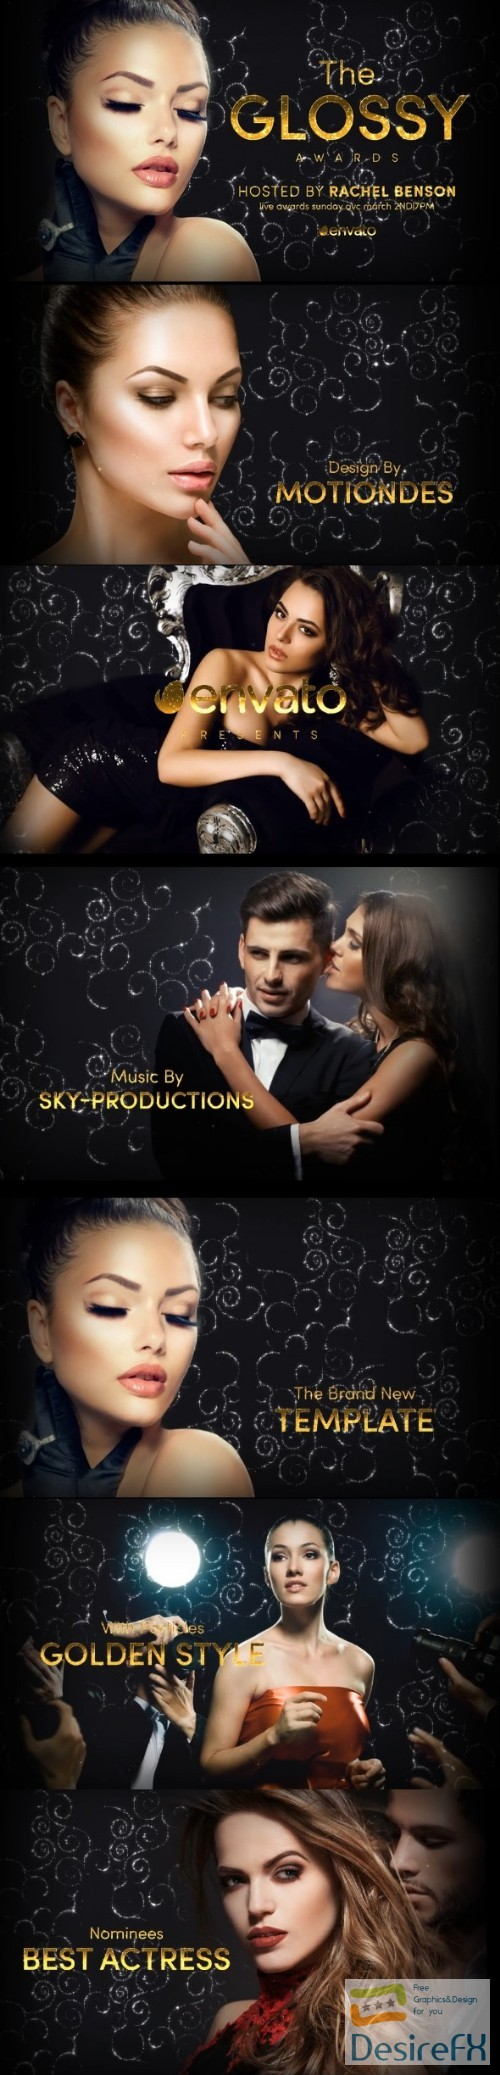 after-effects-projects - Videohive The Glossy Awards 22382757